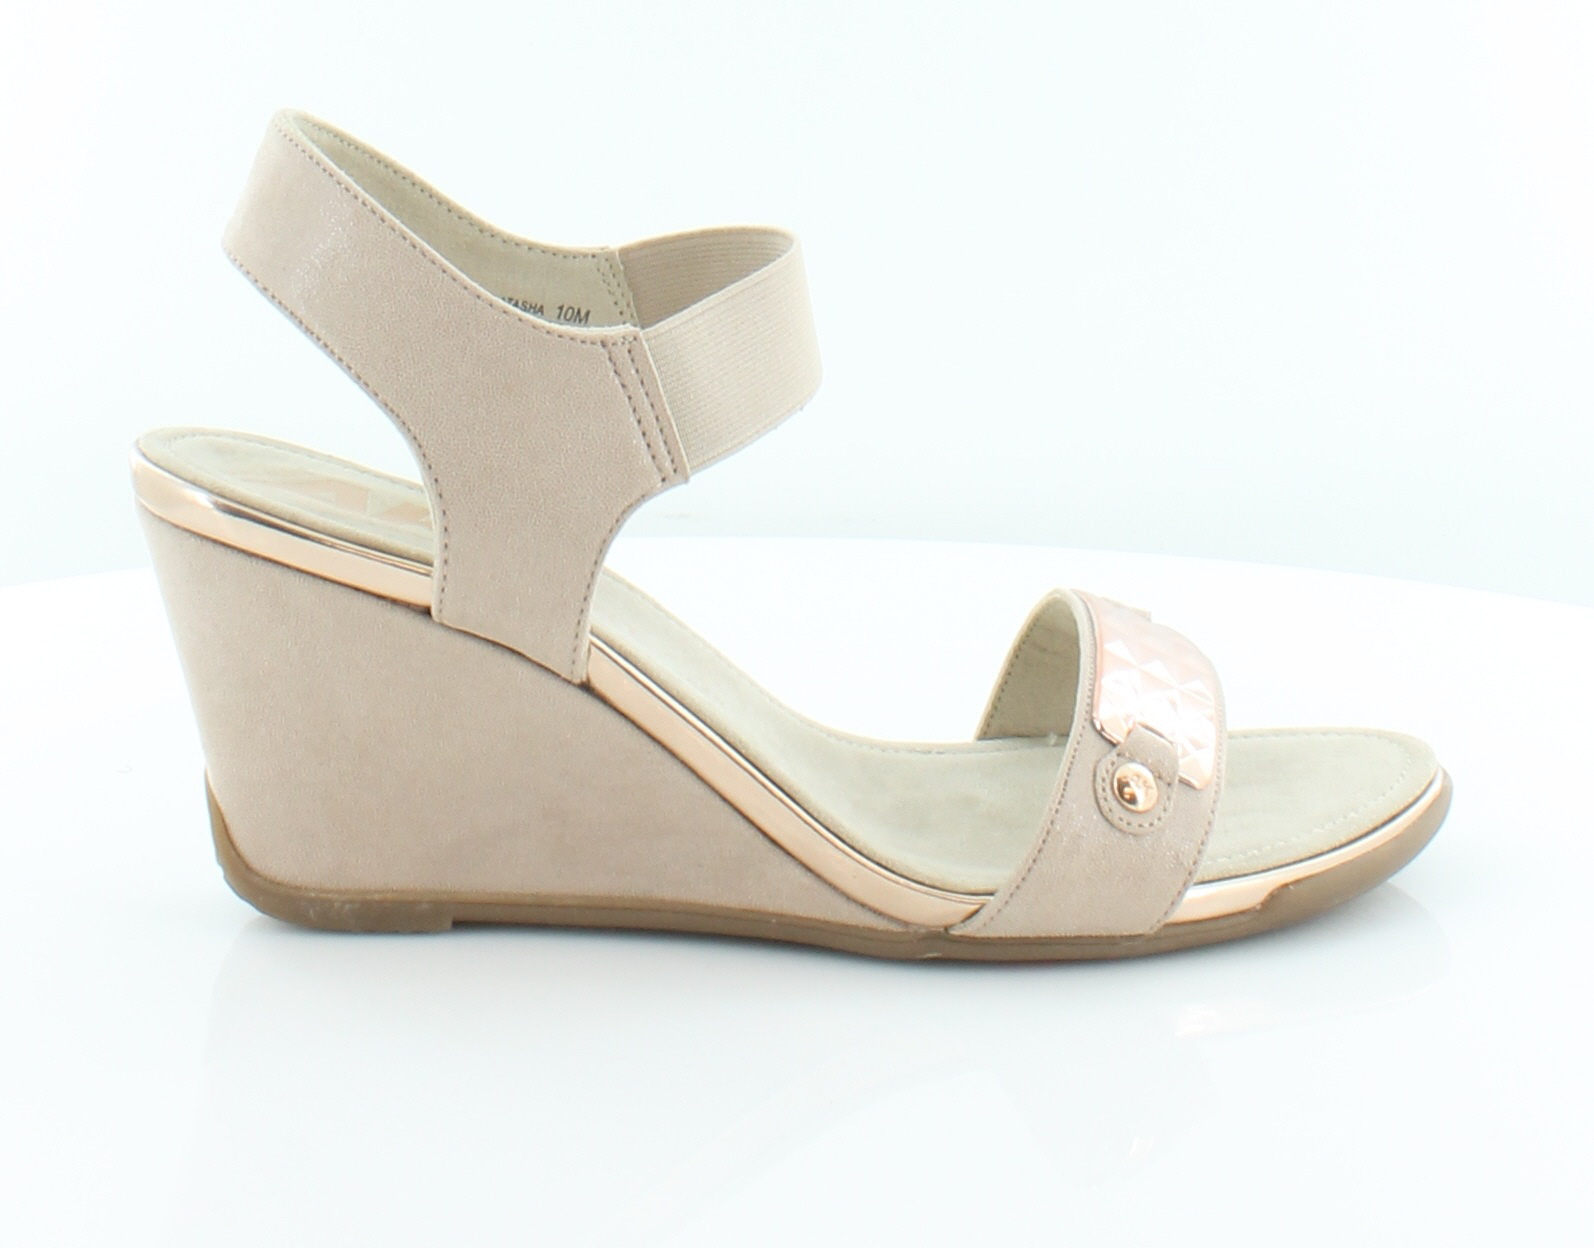 10 Klein Anne Sandals Beige Size Msrp70 Womens M Latasha Shoes rCBeWxod